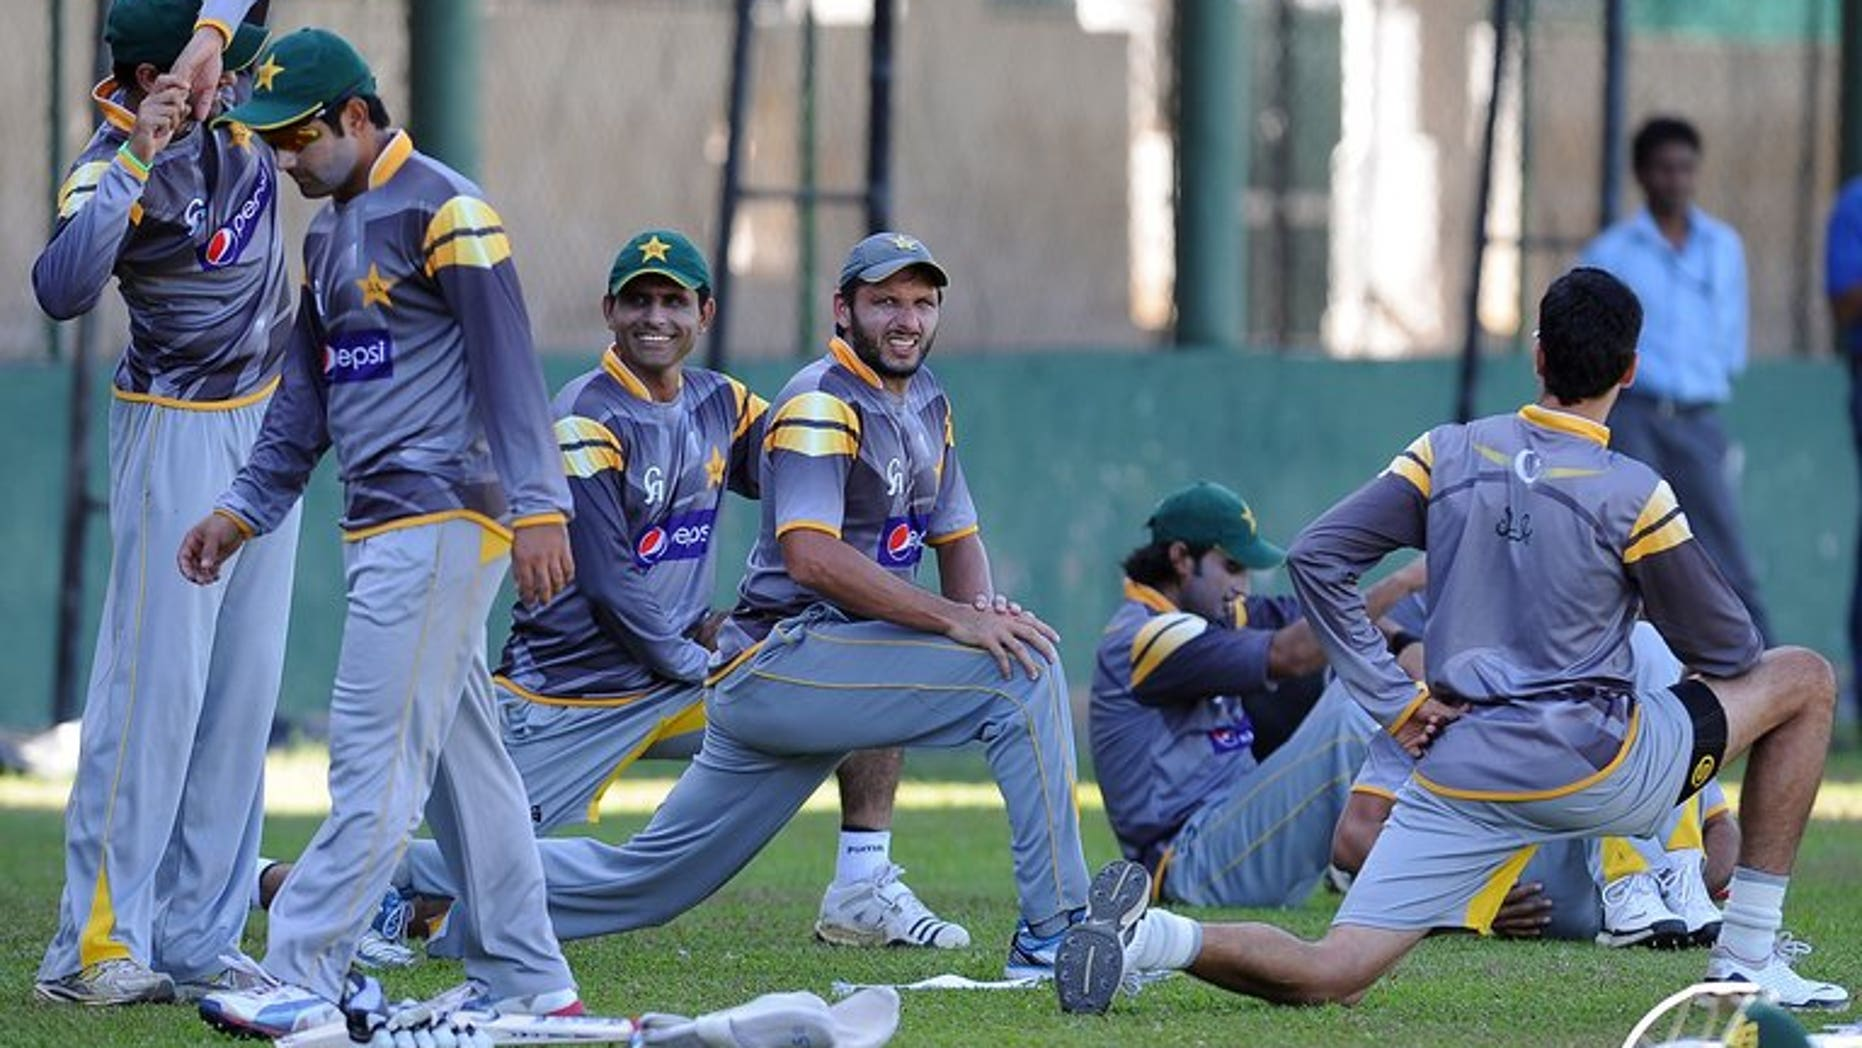 Pakistan cricketers stretch during an ICC Twenty20 Cricket World Cup practise session in Colombo on October 3, 2012. Pakistan announced the schedule for its series against South Africa in October, involving two Tests, five one-day matches and two Twenty20 games.